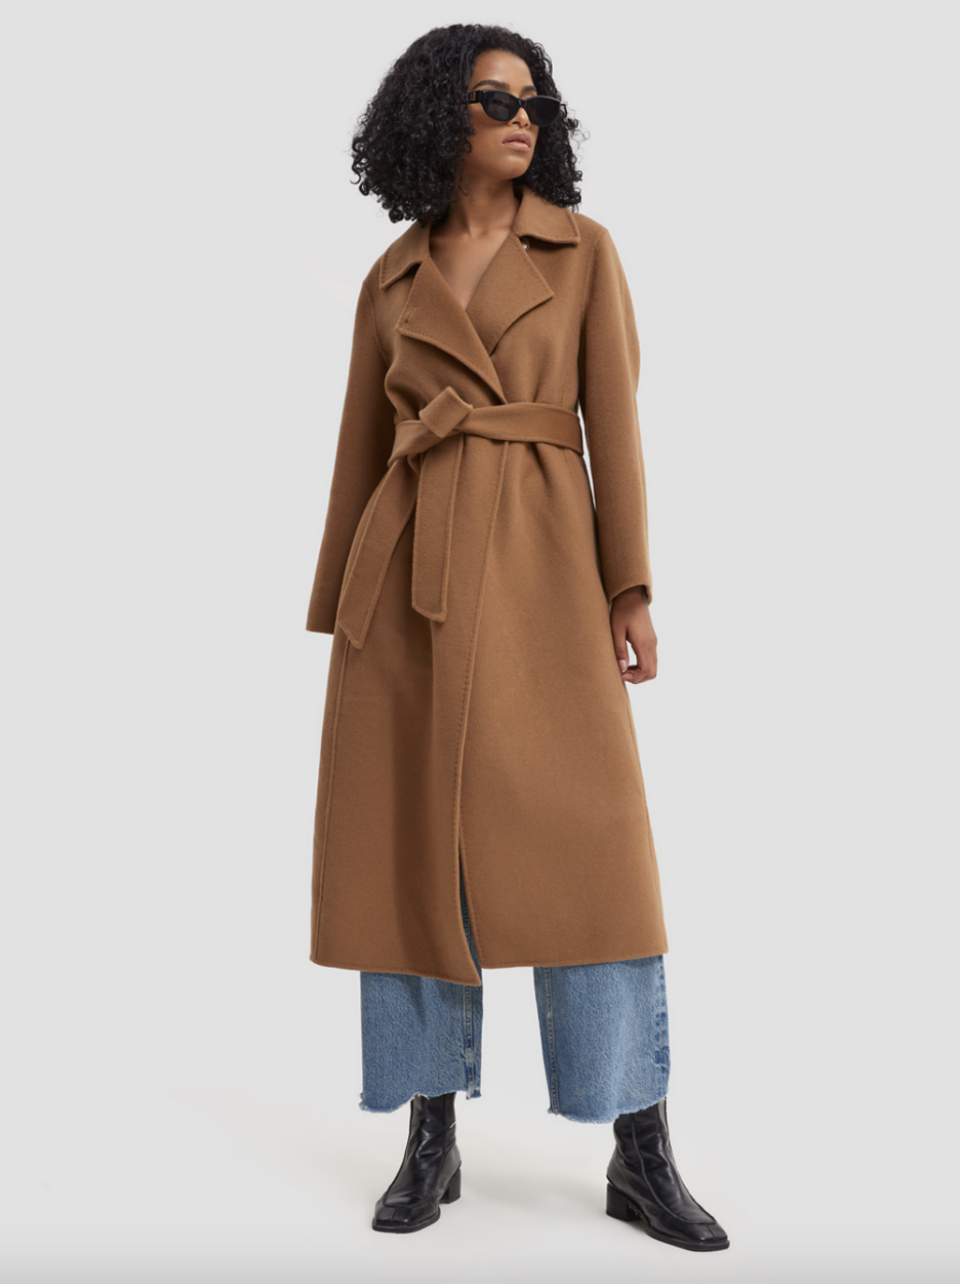 black model with curly hair and sunglasses wearing black boots, blue jeans and camel Earth Tone Belted Wool Coat